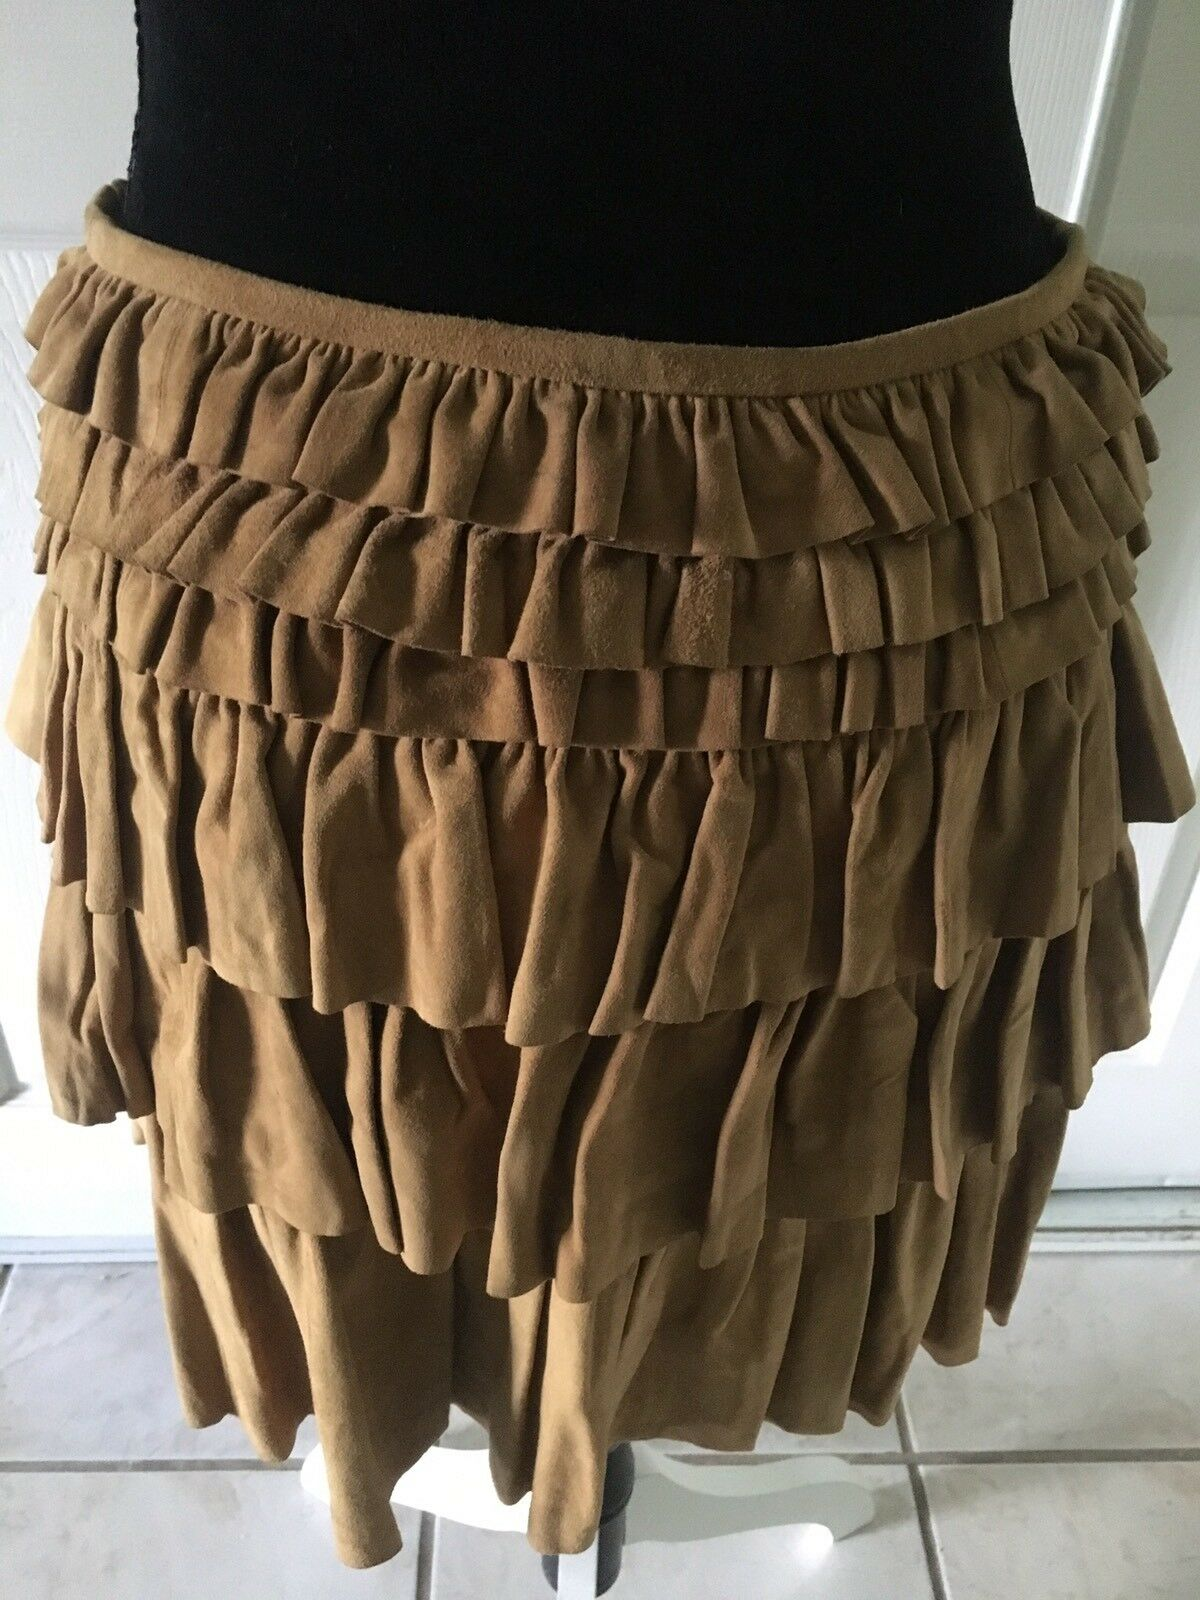 1245 NWT AUTH K-YEN RUFFLED BEIGE SUEDE ABOVE KNEE SKIRT FULLY LINED SZ M